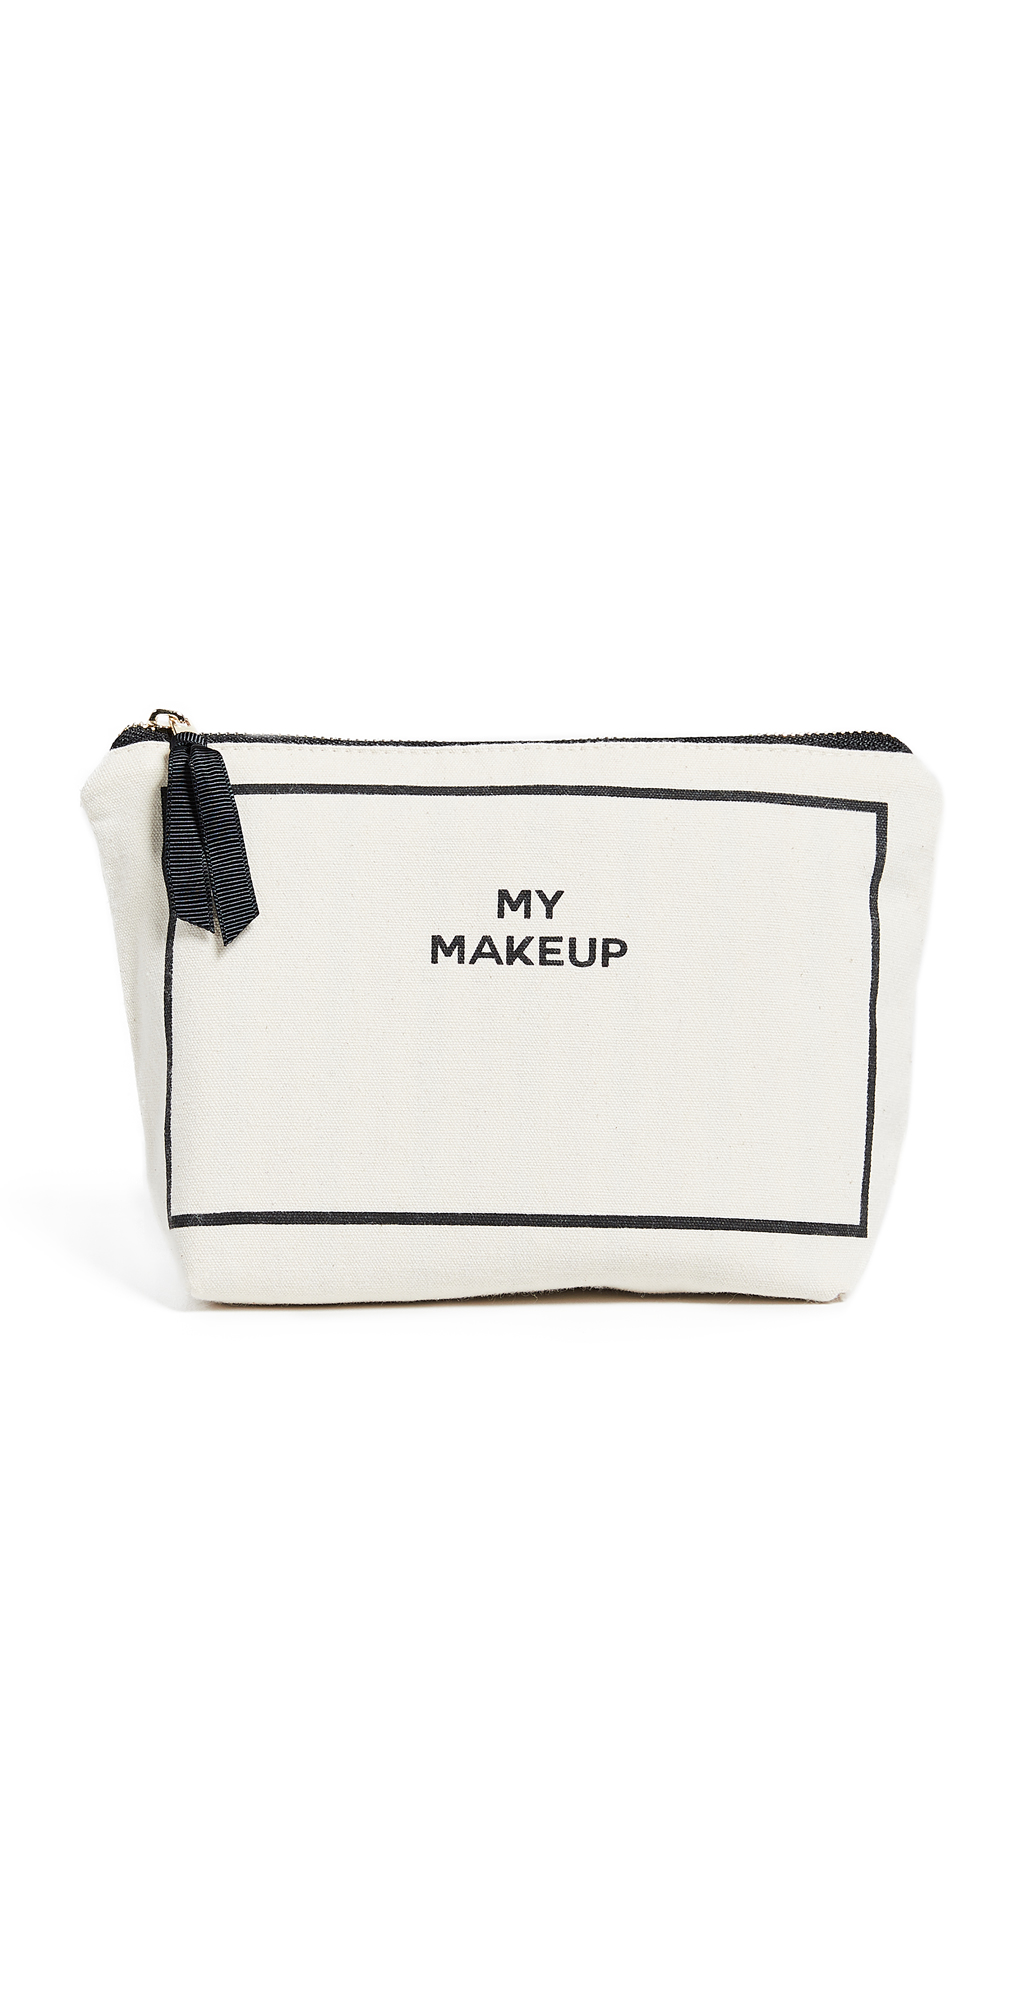 My Makeup Lined Travel Pouch